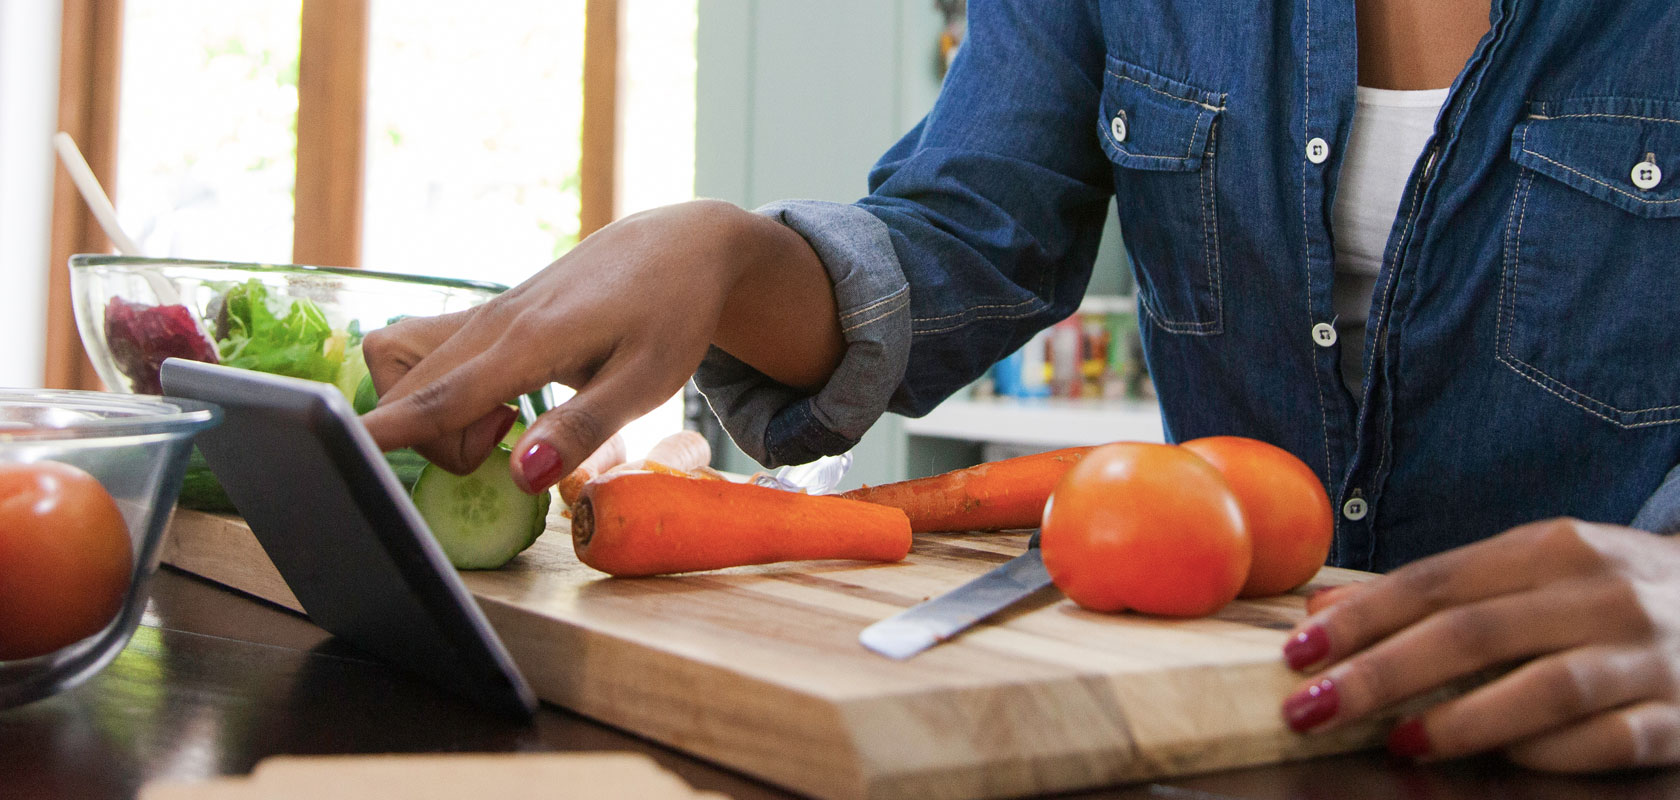 Sur La Table Online Culinary Institute, chef with ipad chopping vegetables